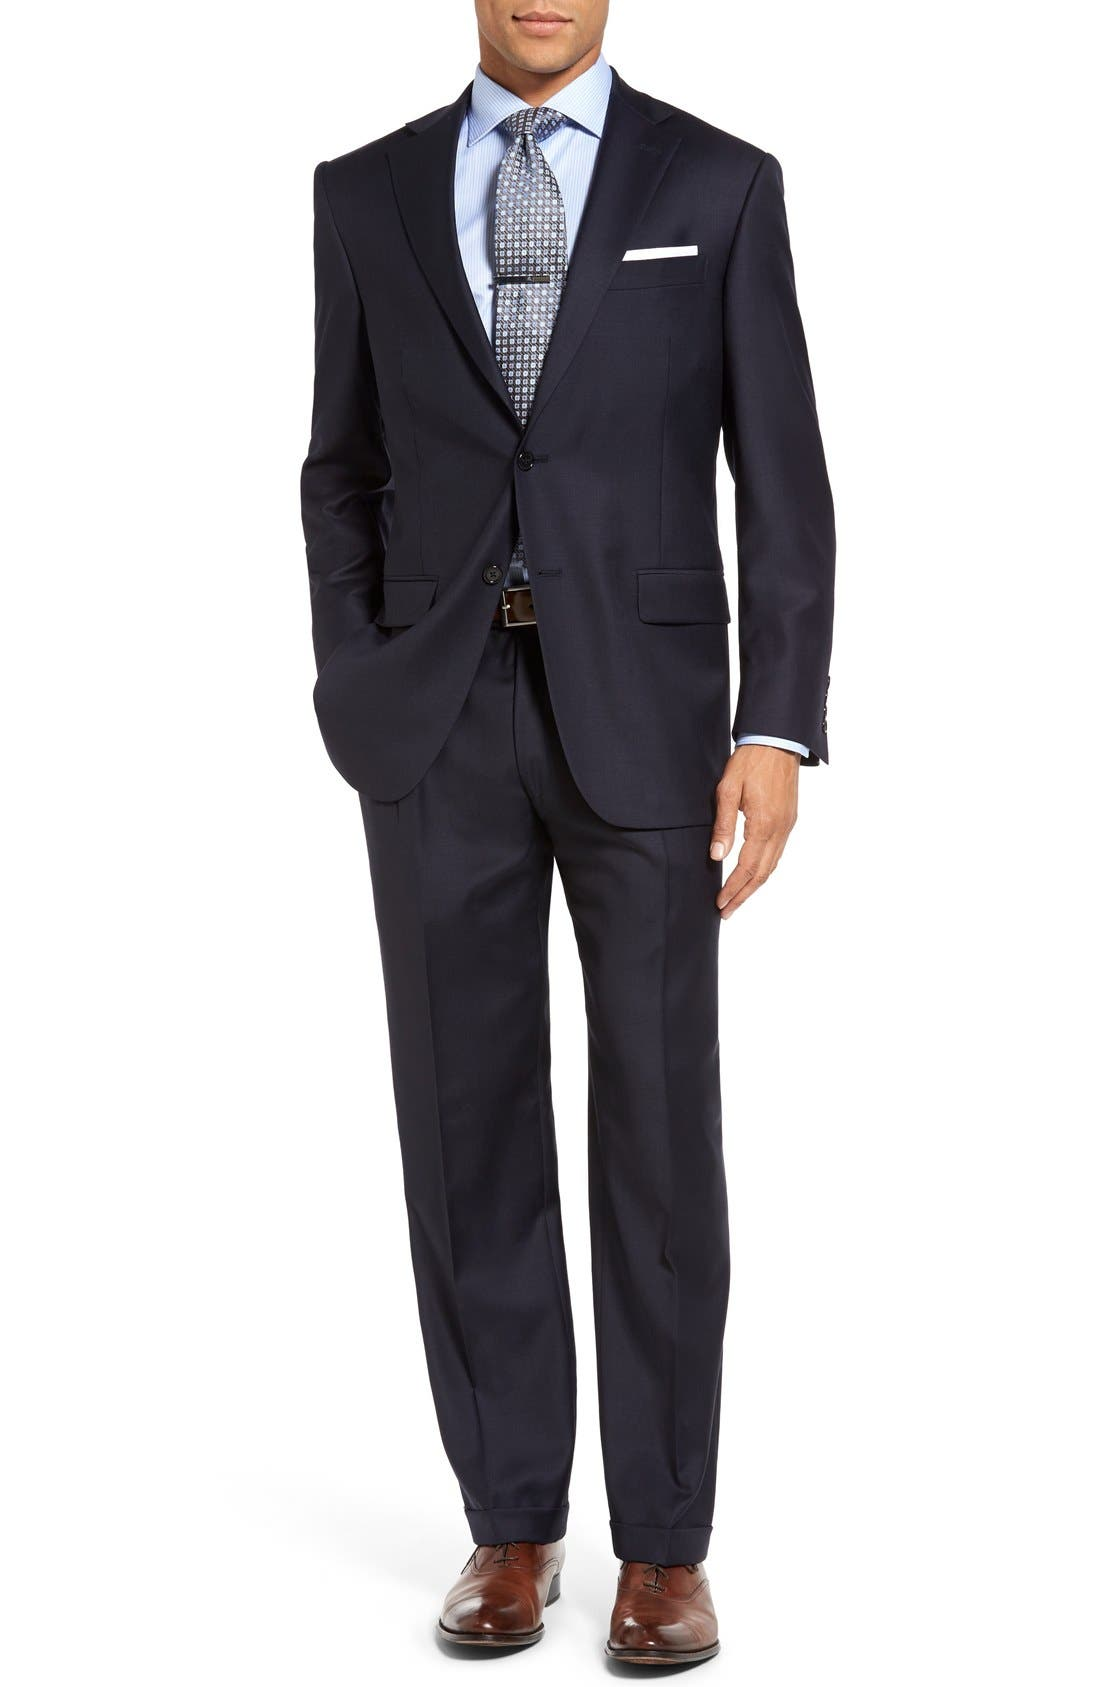 HART SCHAFFNER MARX Chicago Classic Fit Solid Wool